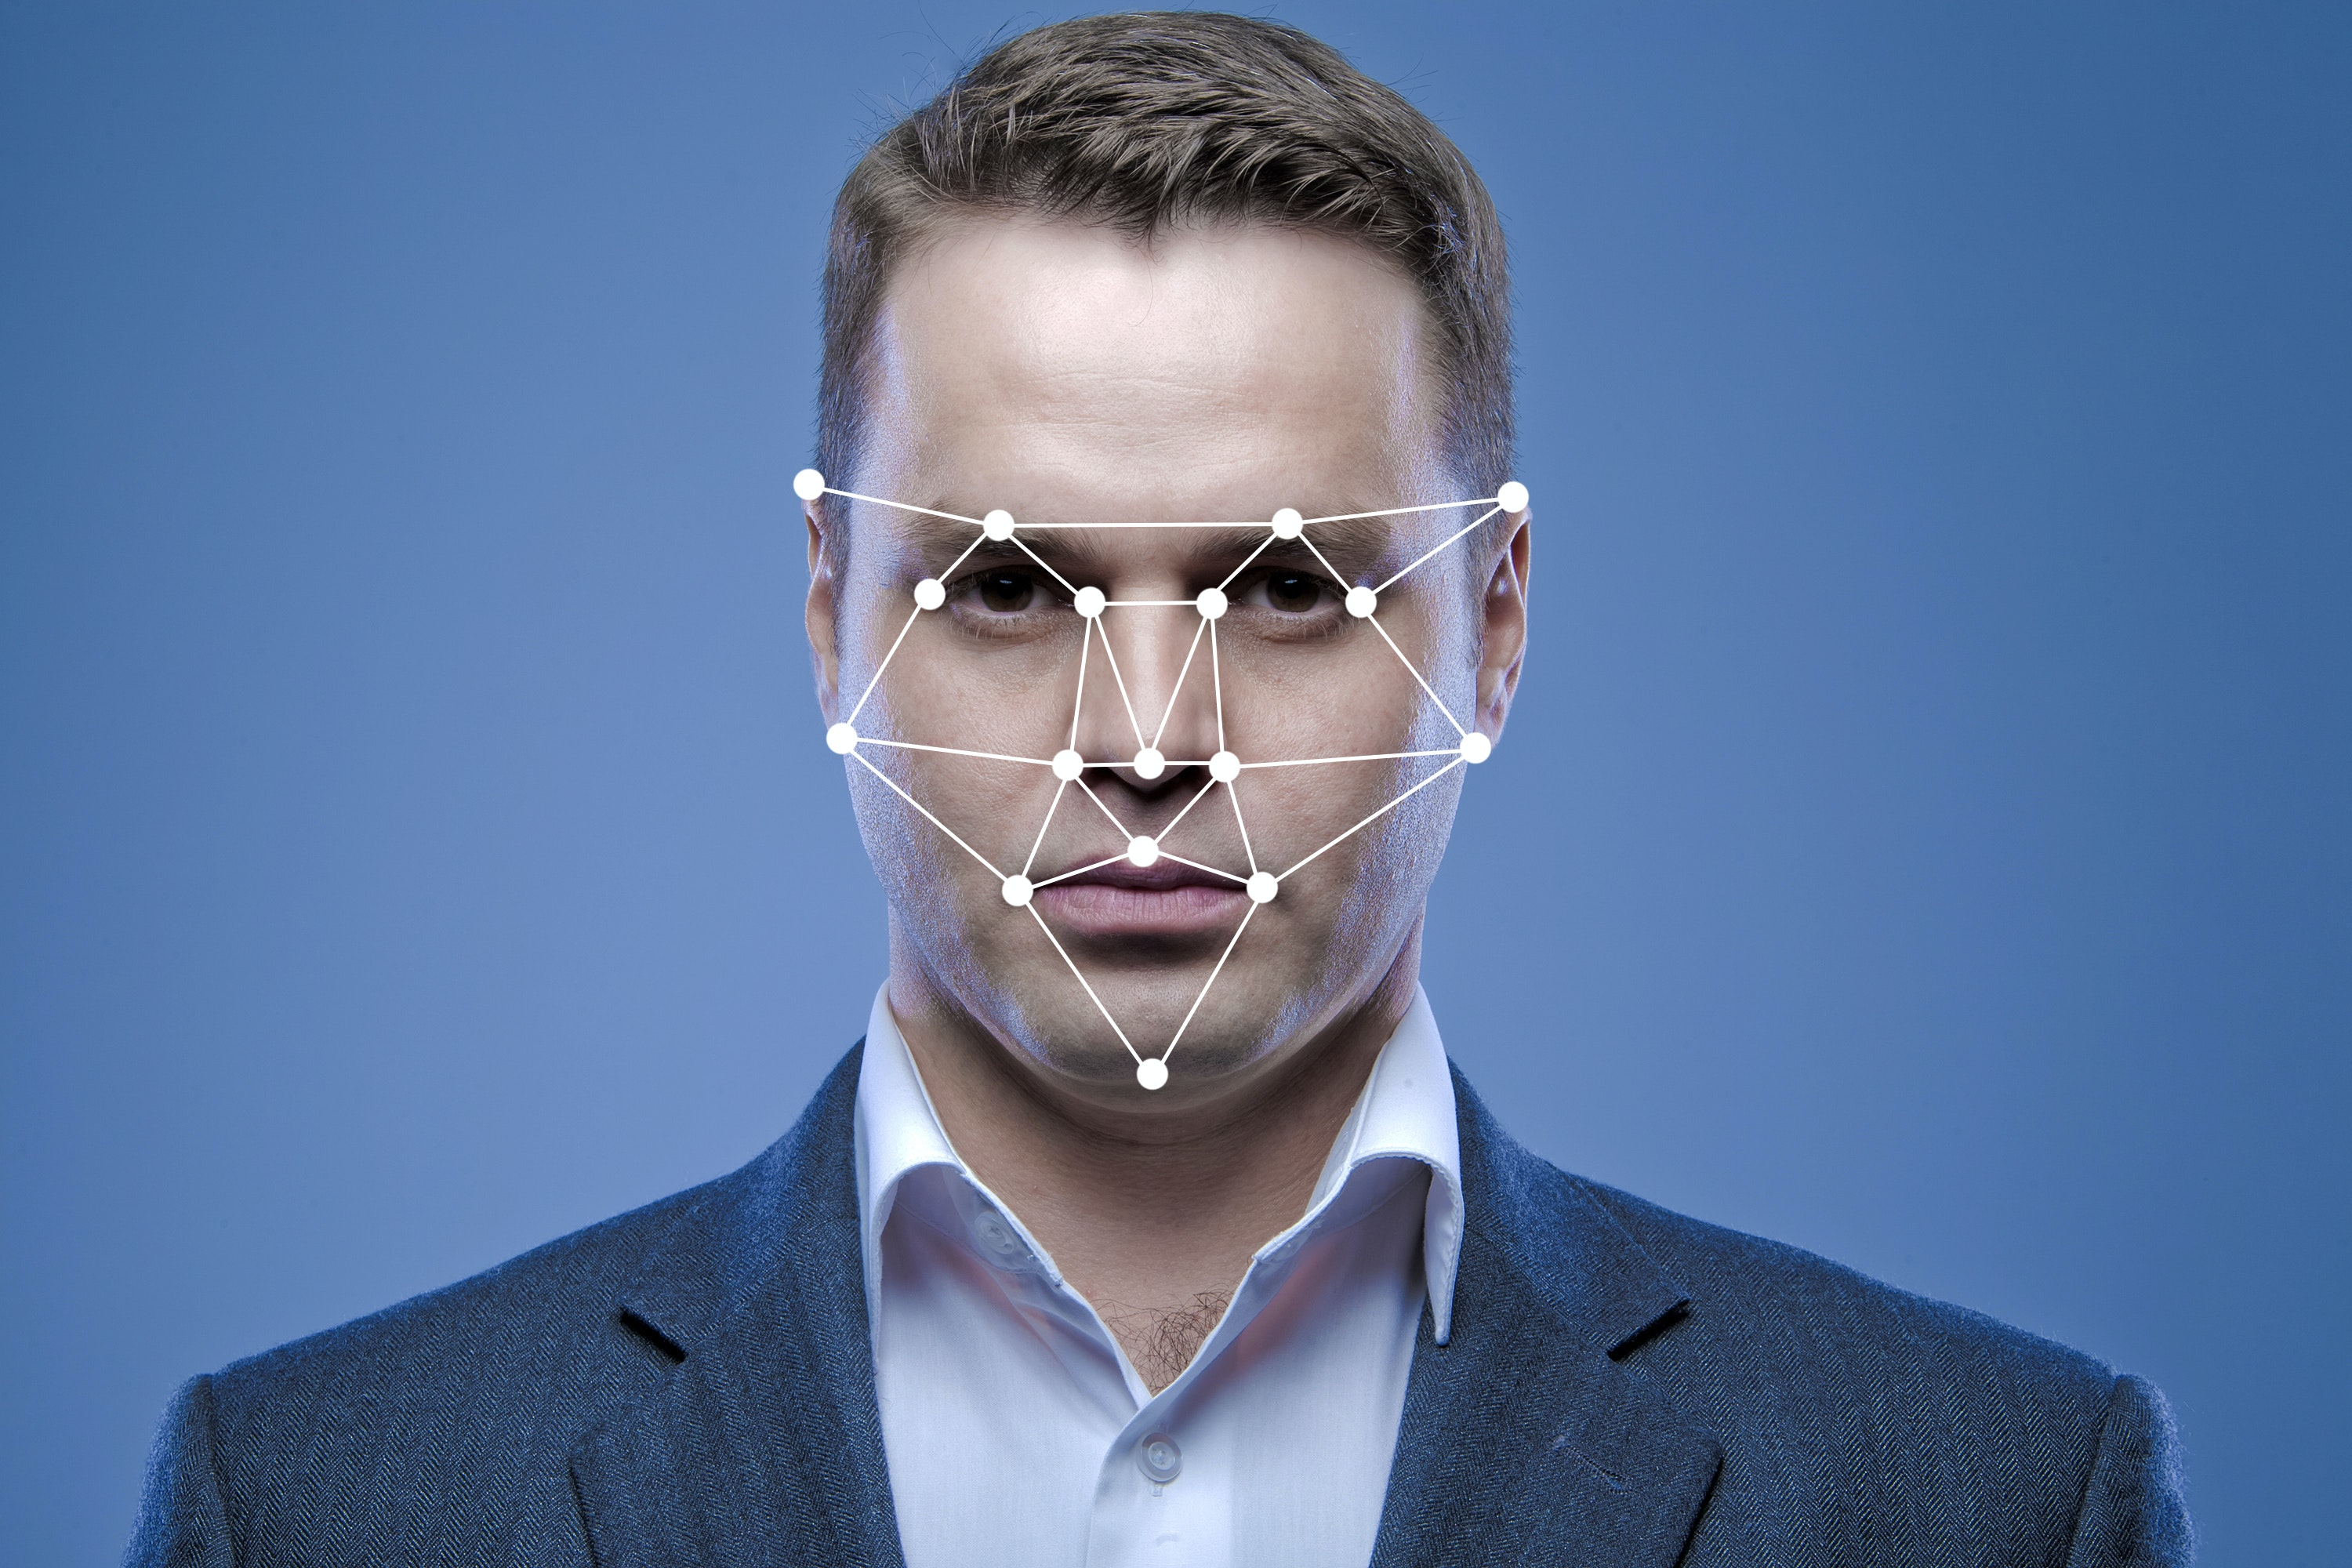 Improving facial recognition